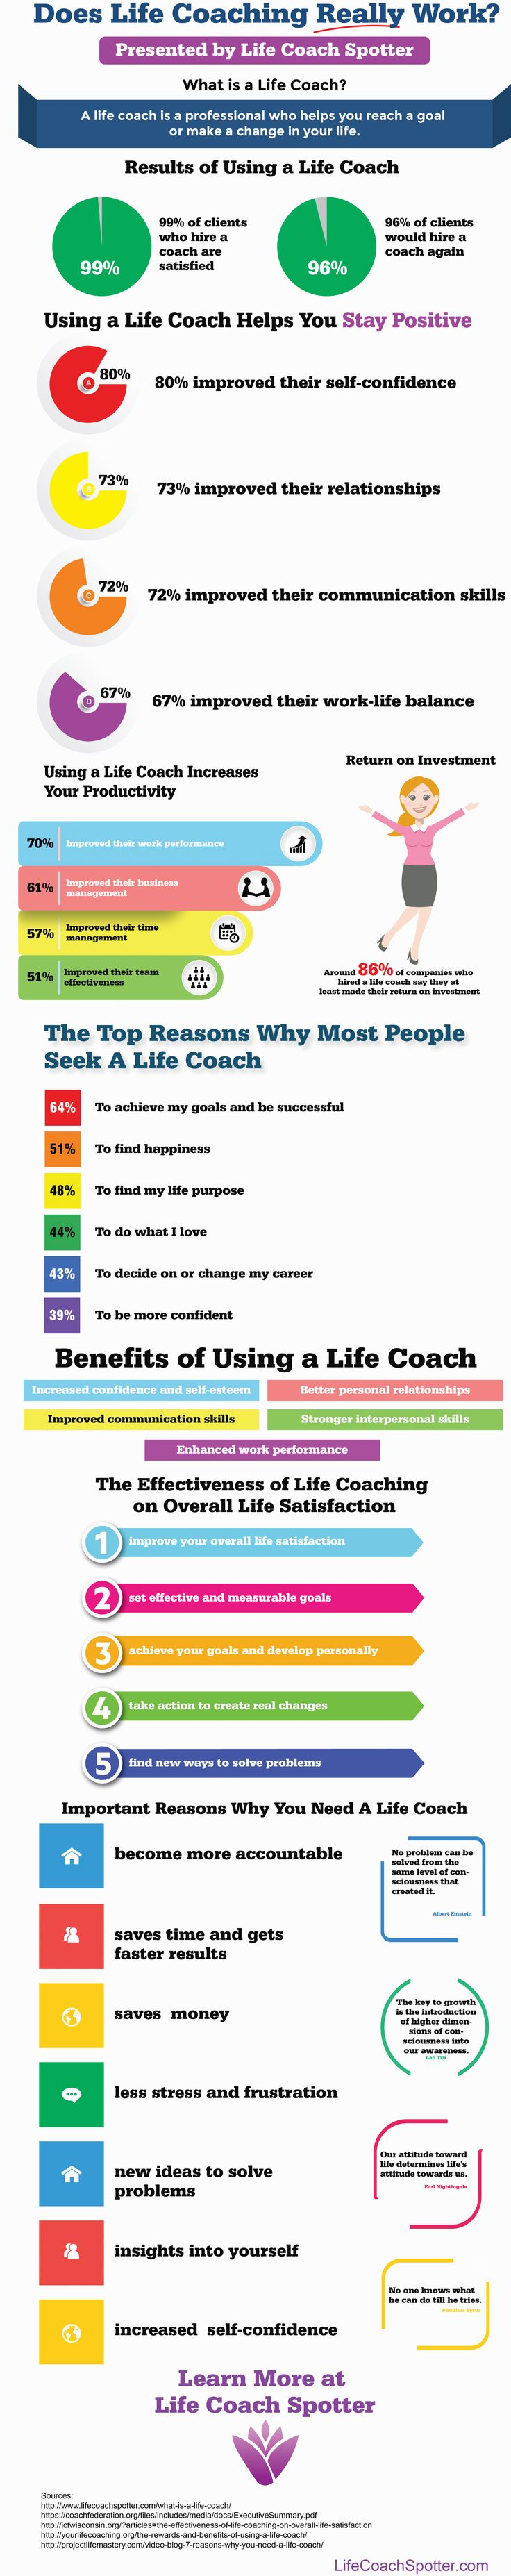 Does Life Coaching Really Work? Good news, yes. Data gathered by ICF